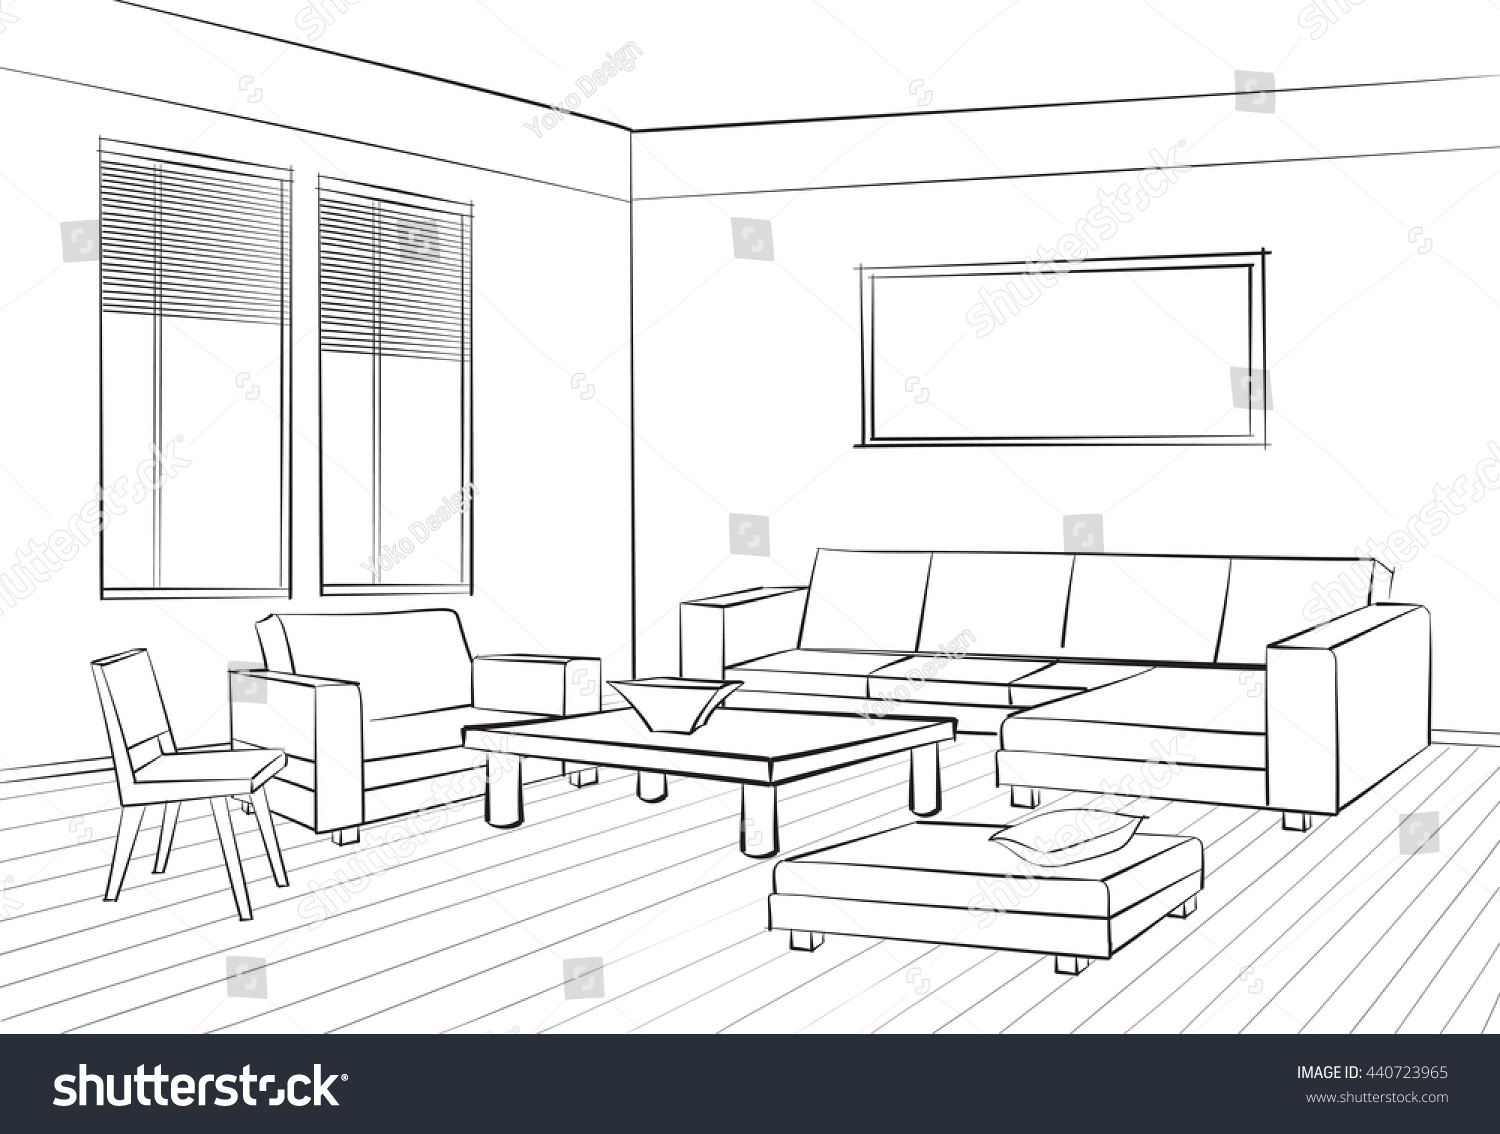 Home interior furniture sofa armchair table stock vector for Drawing room bed design